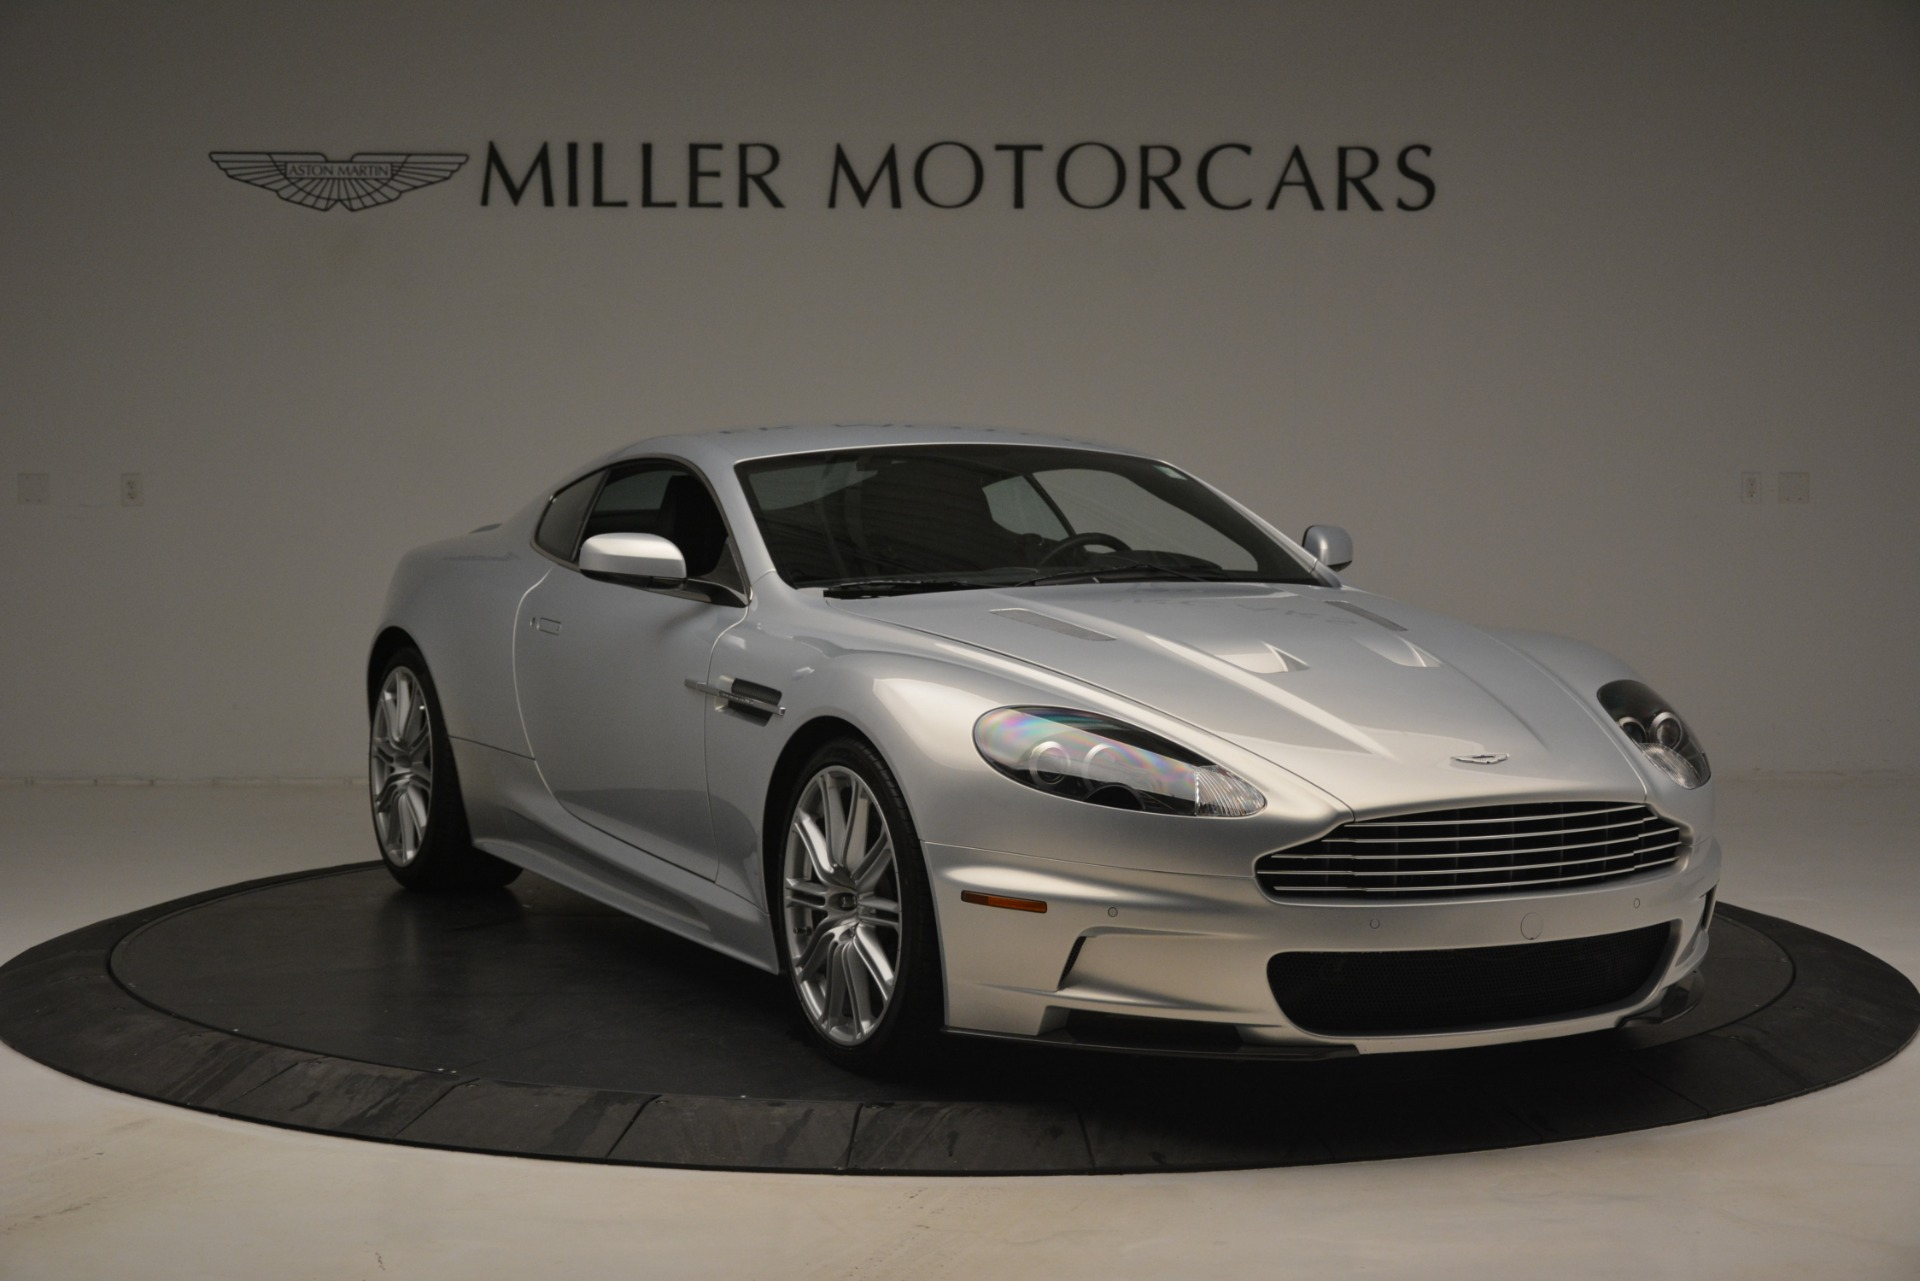 Used 2009 Aston Martin DBS Coupe For Sale In Greenwich, CT 3033_p11